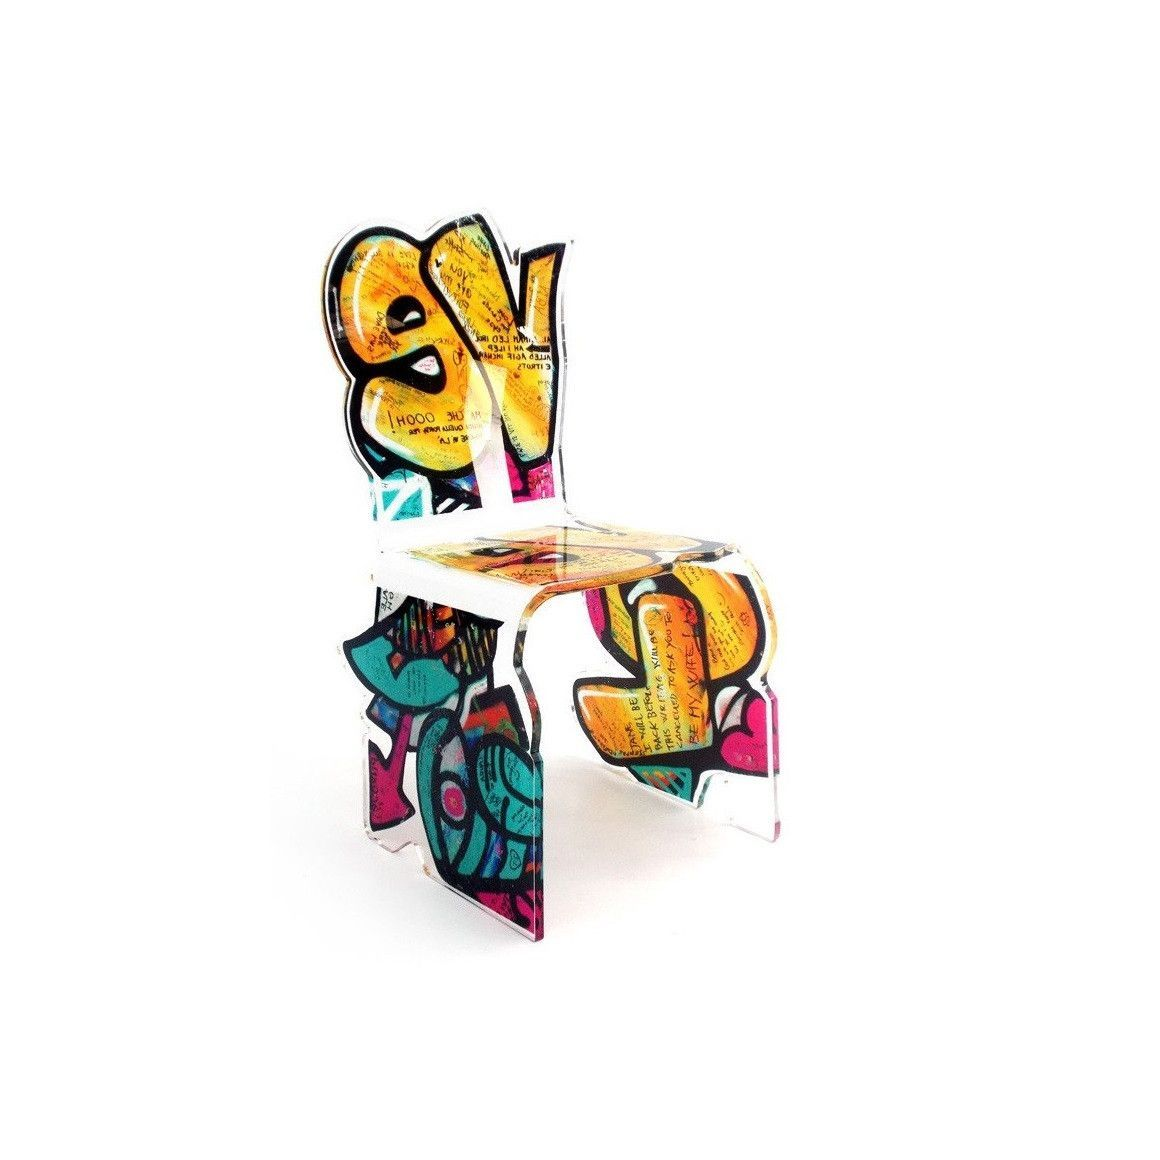 Acrila street art chair yellow products